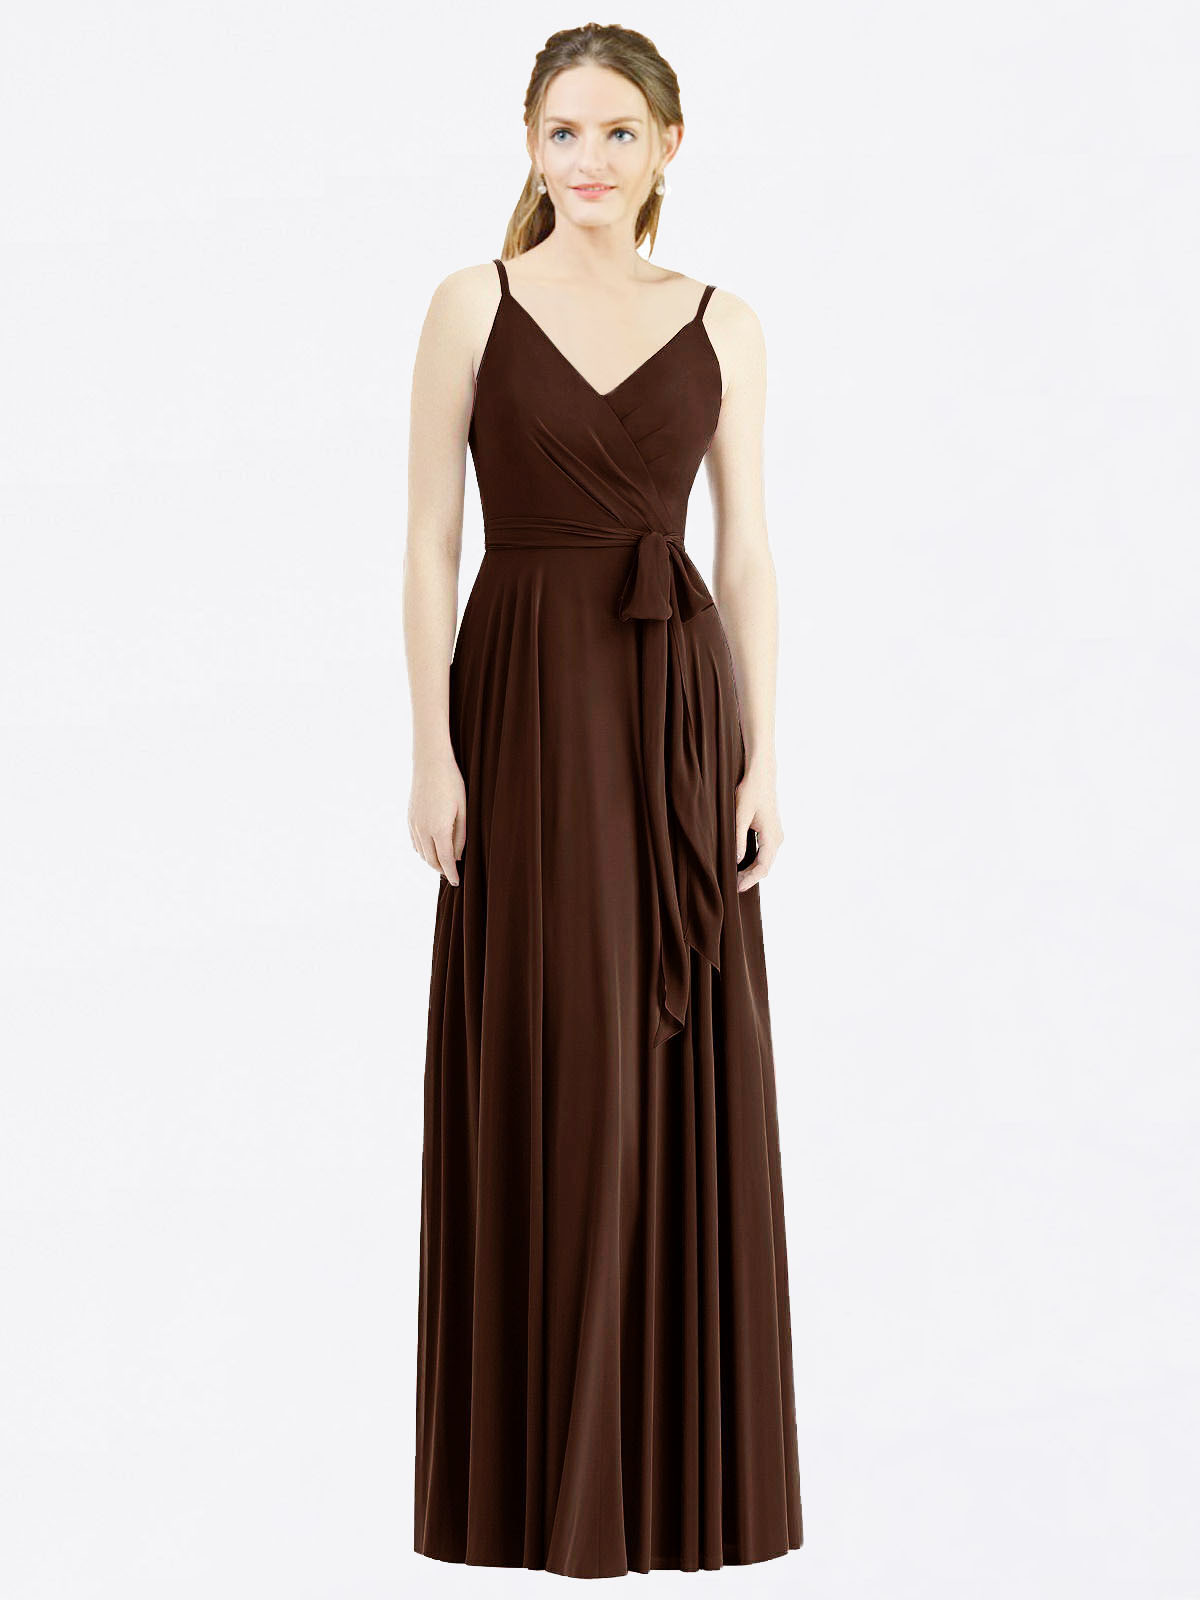 Long A-Line Spaghetti Straps, V-Neck Sleeveless Chocolate Chiffon Bridesmaid Dress Madilyn